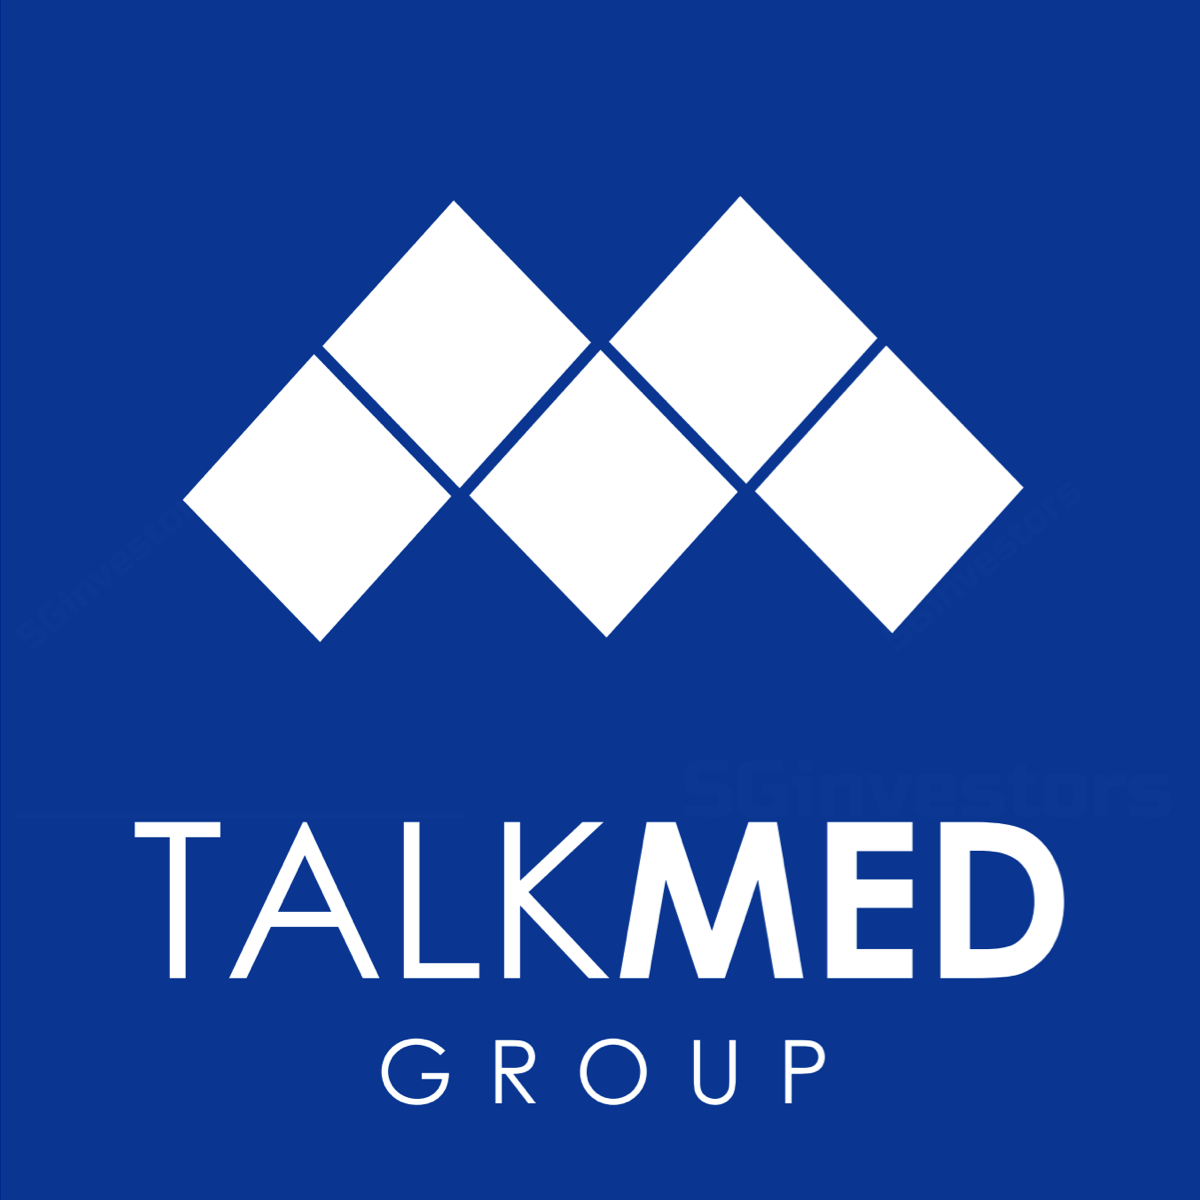 TalkMed Group Limited